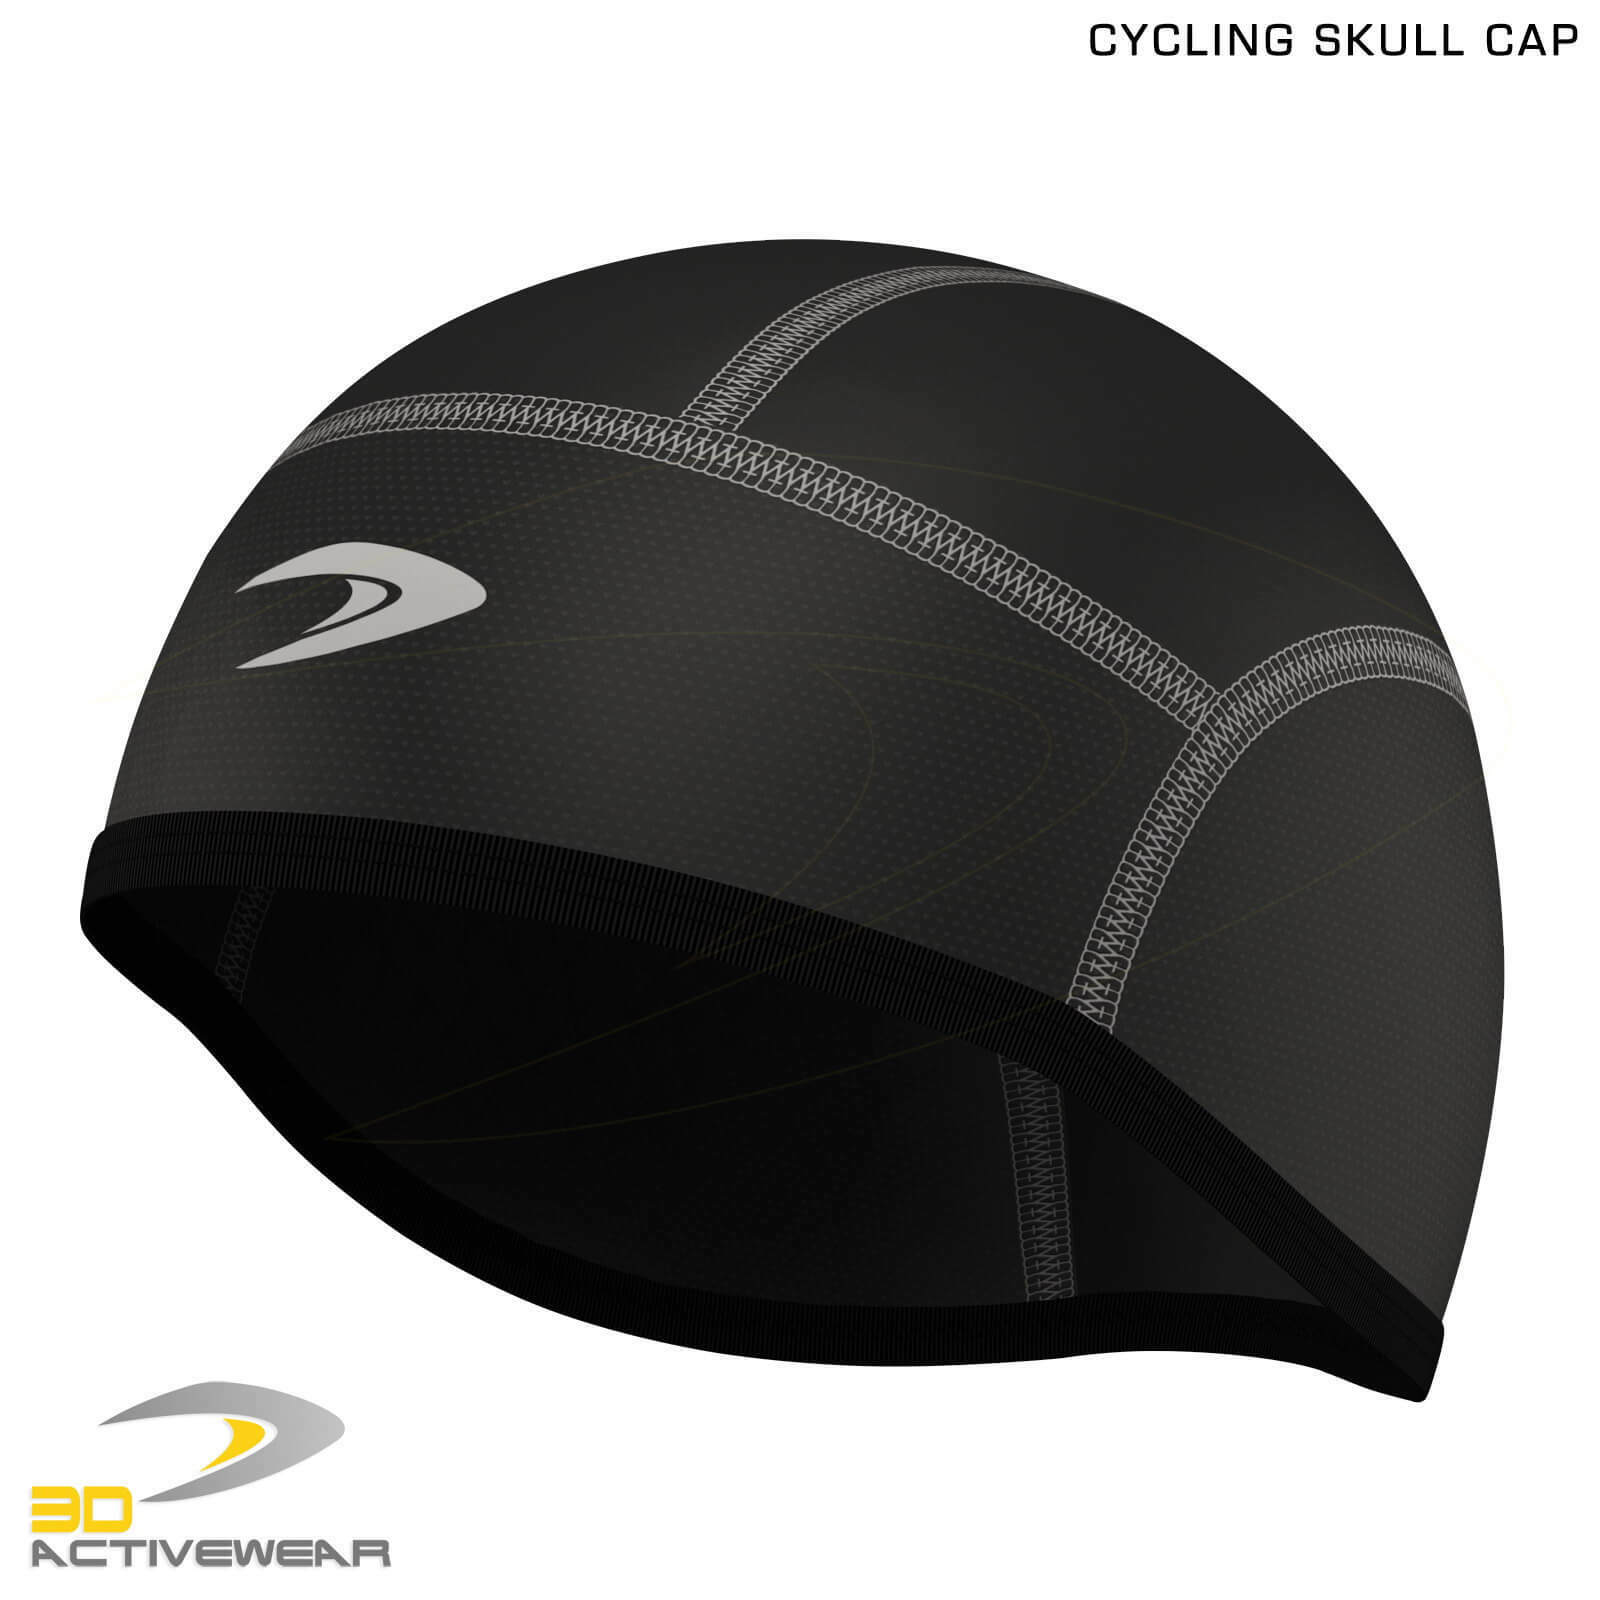 75e36b2aa Details about Skull Cap Thermal Cycling Beanie Running Helmet Liner Outdoor  Hats Warmer